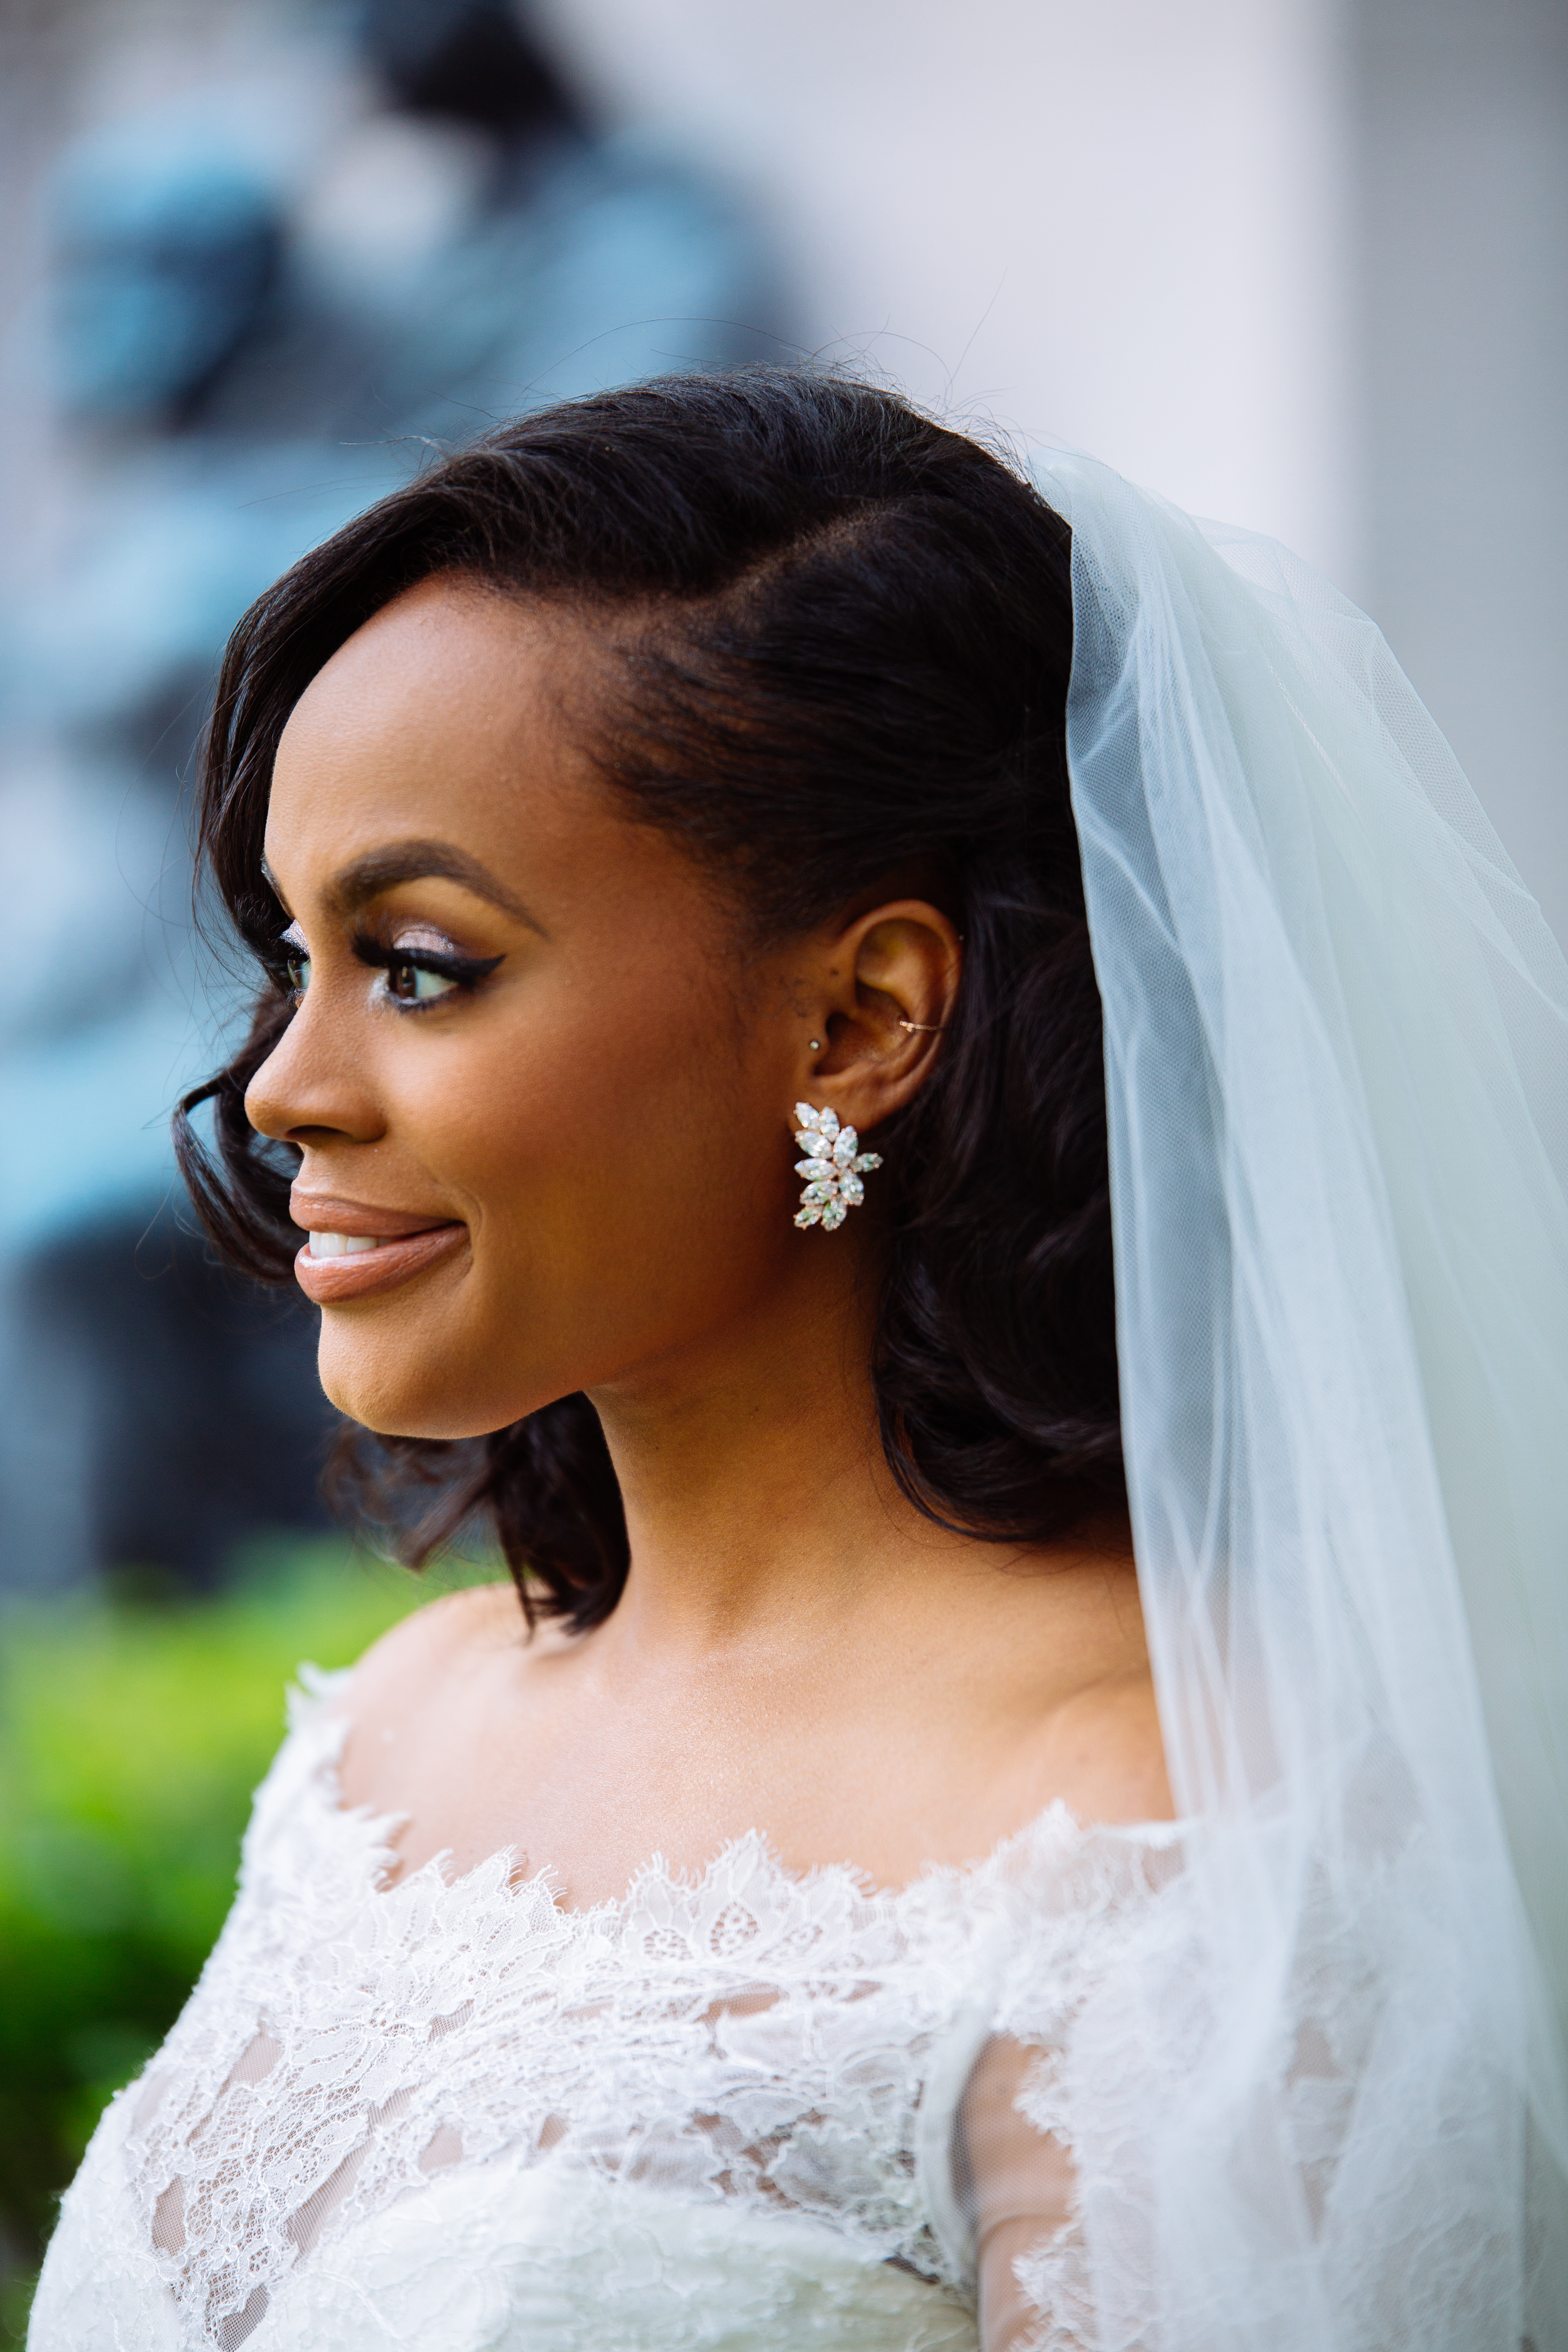 black bride wedding details